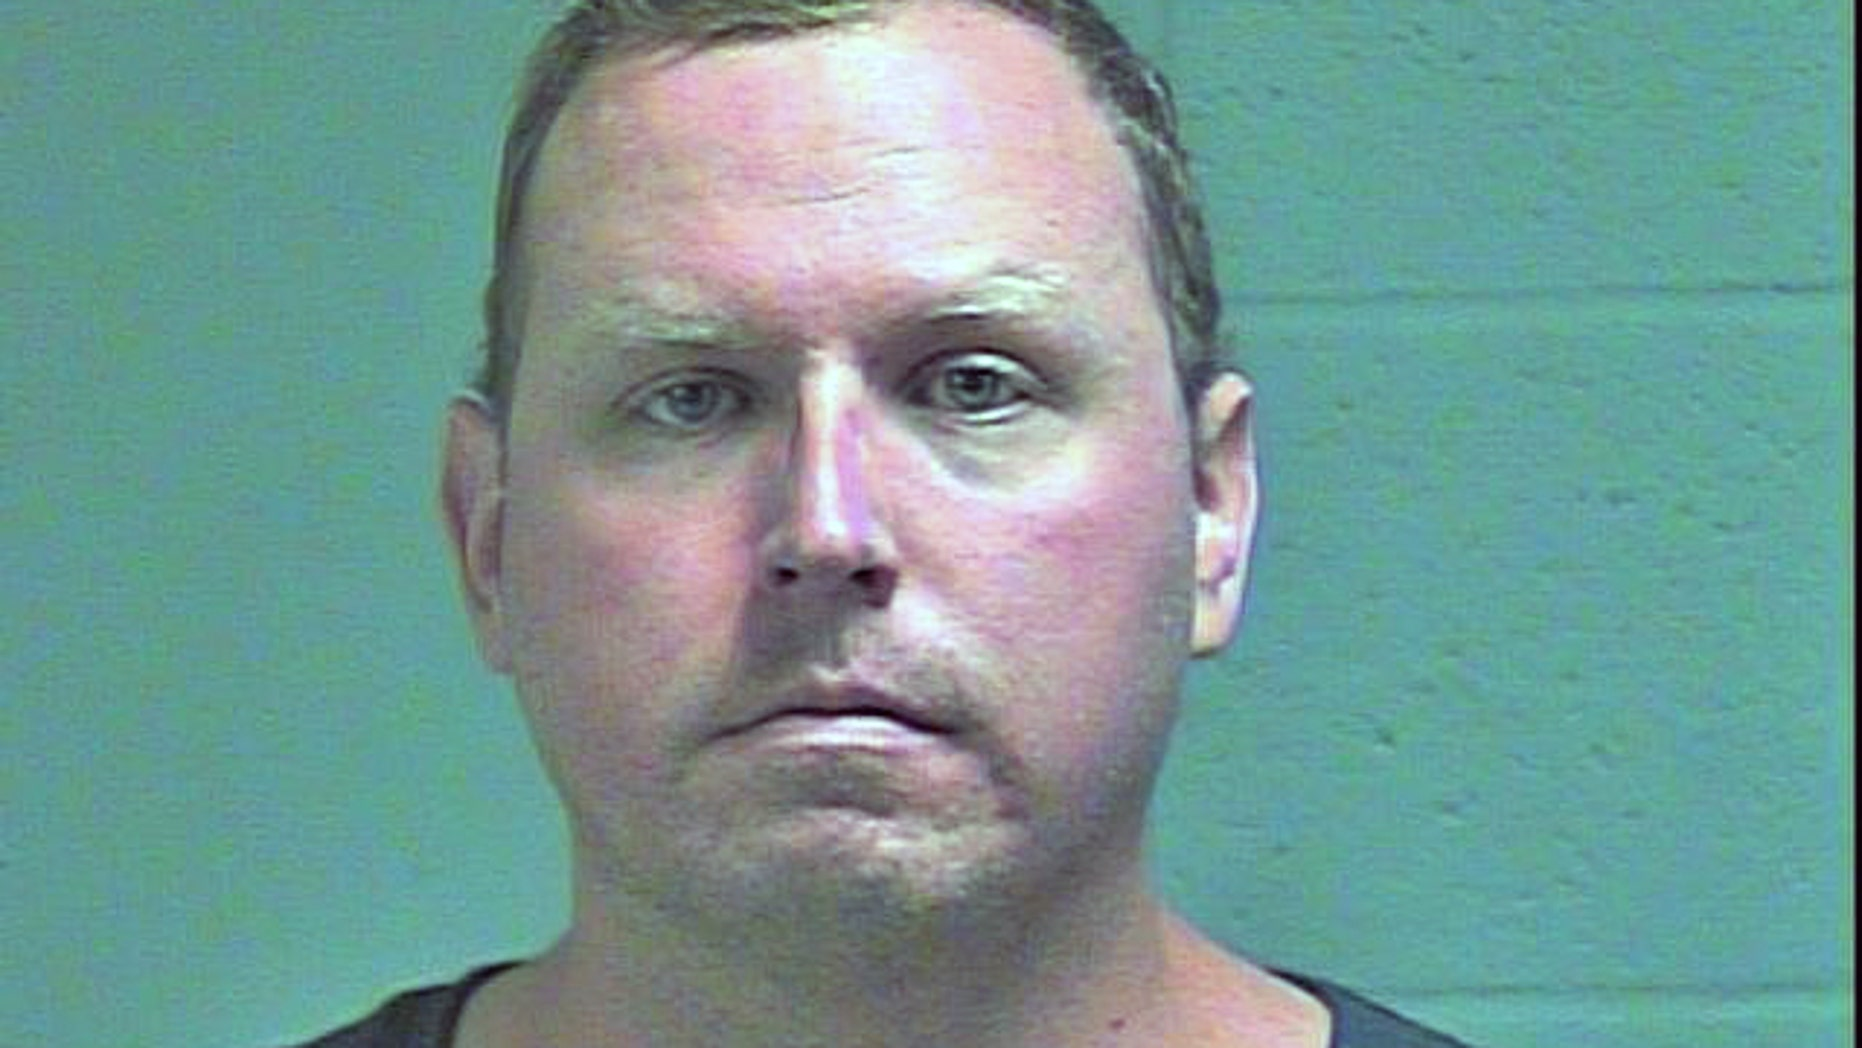 Oklahoma cop charged with murder in shooting of suicidal man | Fox News